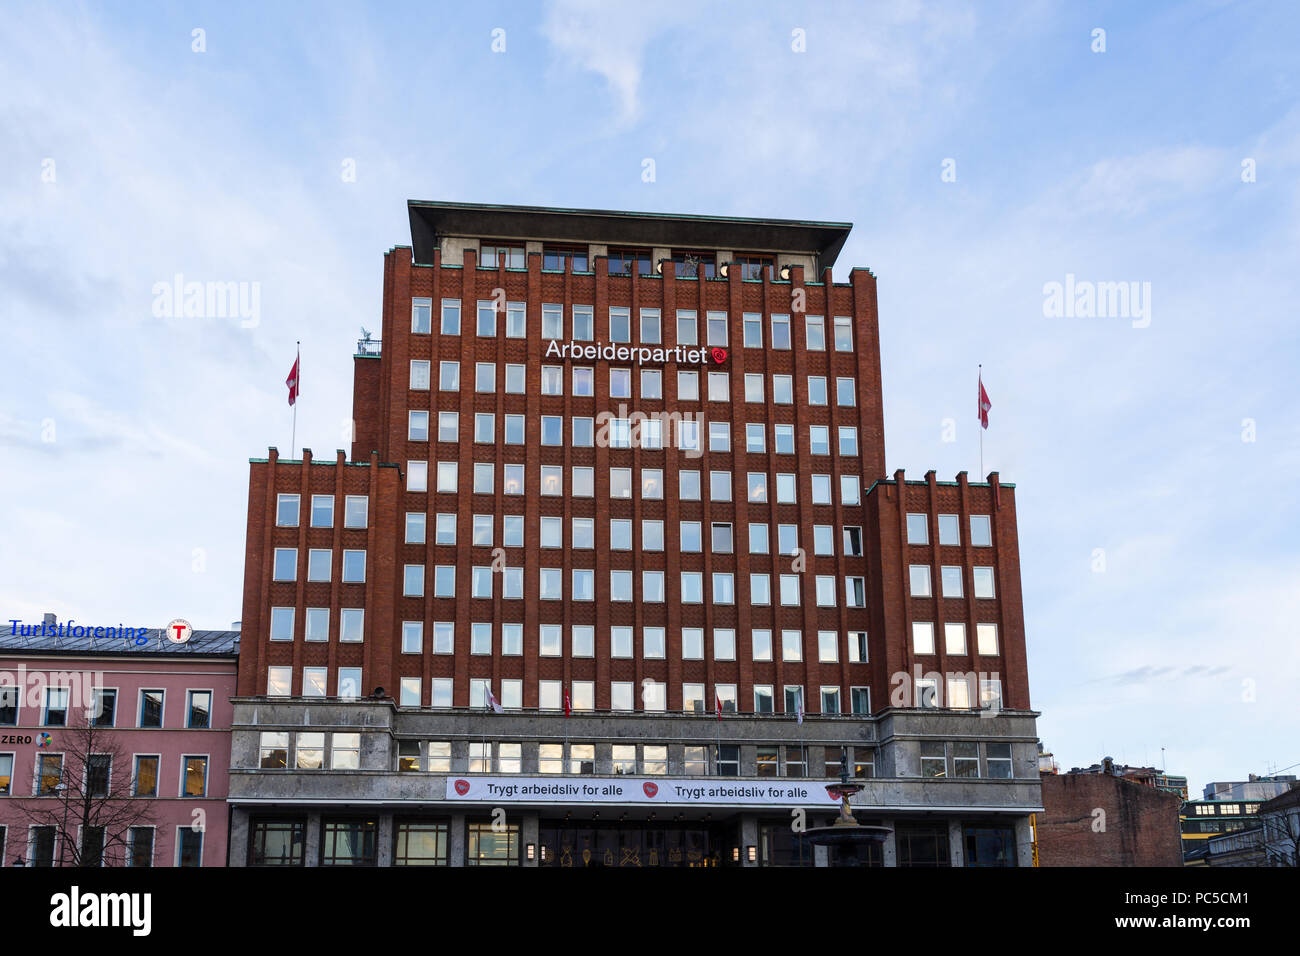 OSLO, NORWAY - APRIL 26, 2018: The Norwegian Labour party headquarters - Stock Image